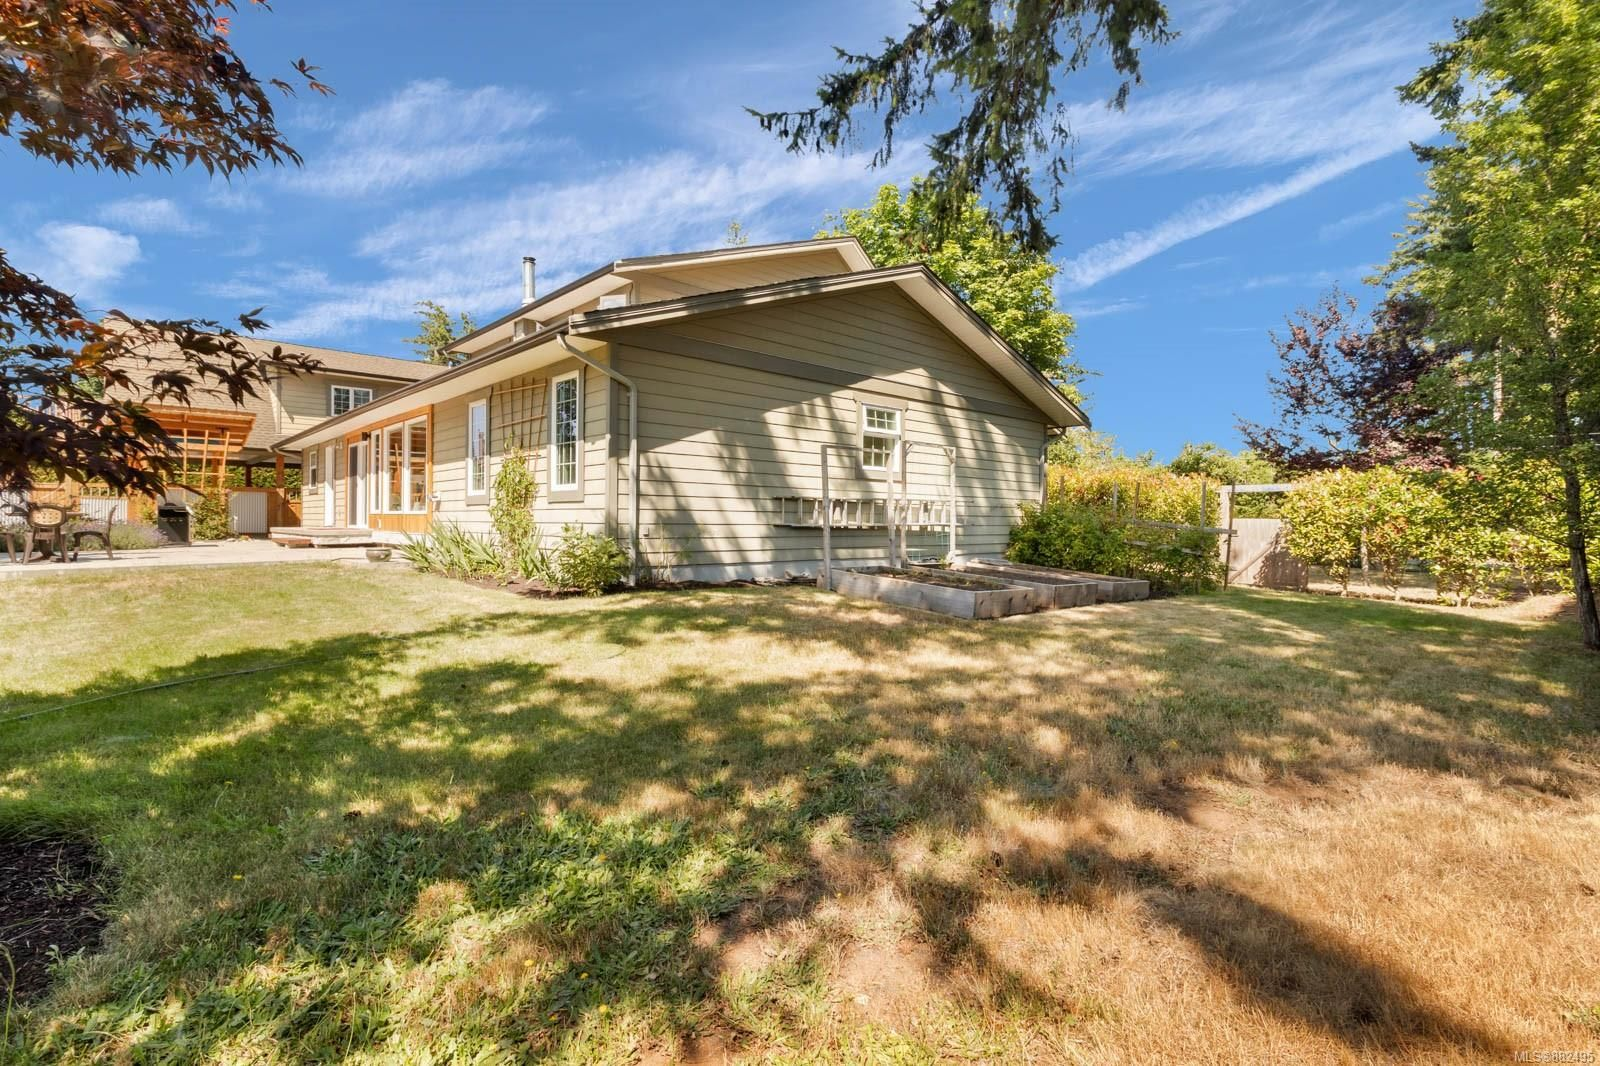 Photo 33: Photos: 375 Butchers Rd in : CV Comox (Town of) House for sale (Comox Valley)  : MLS®# 882495